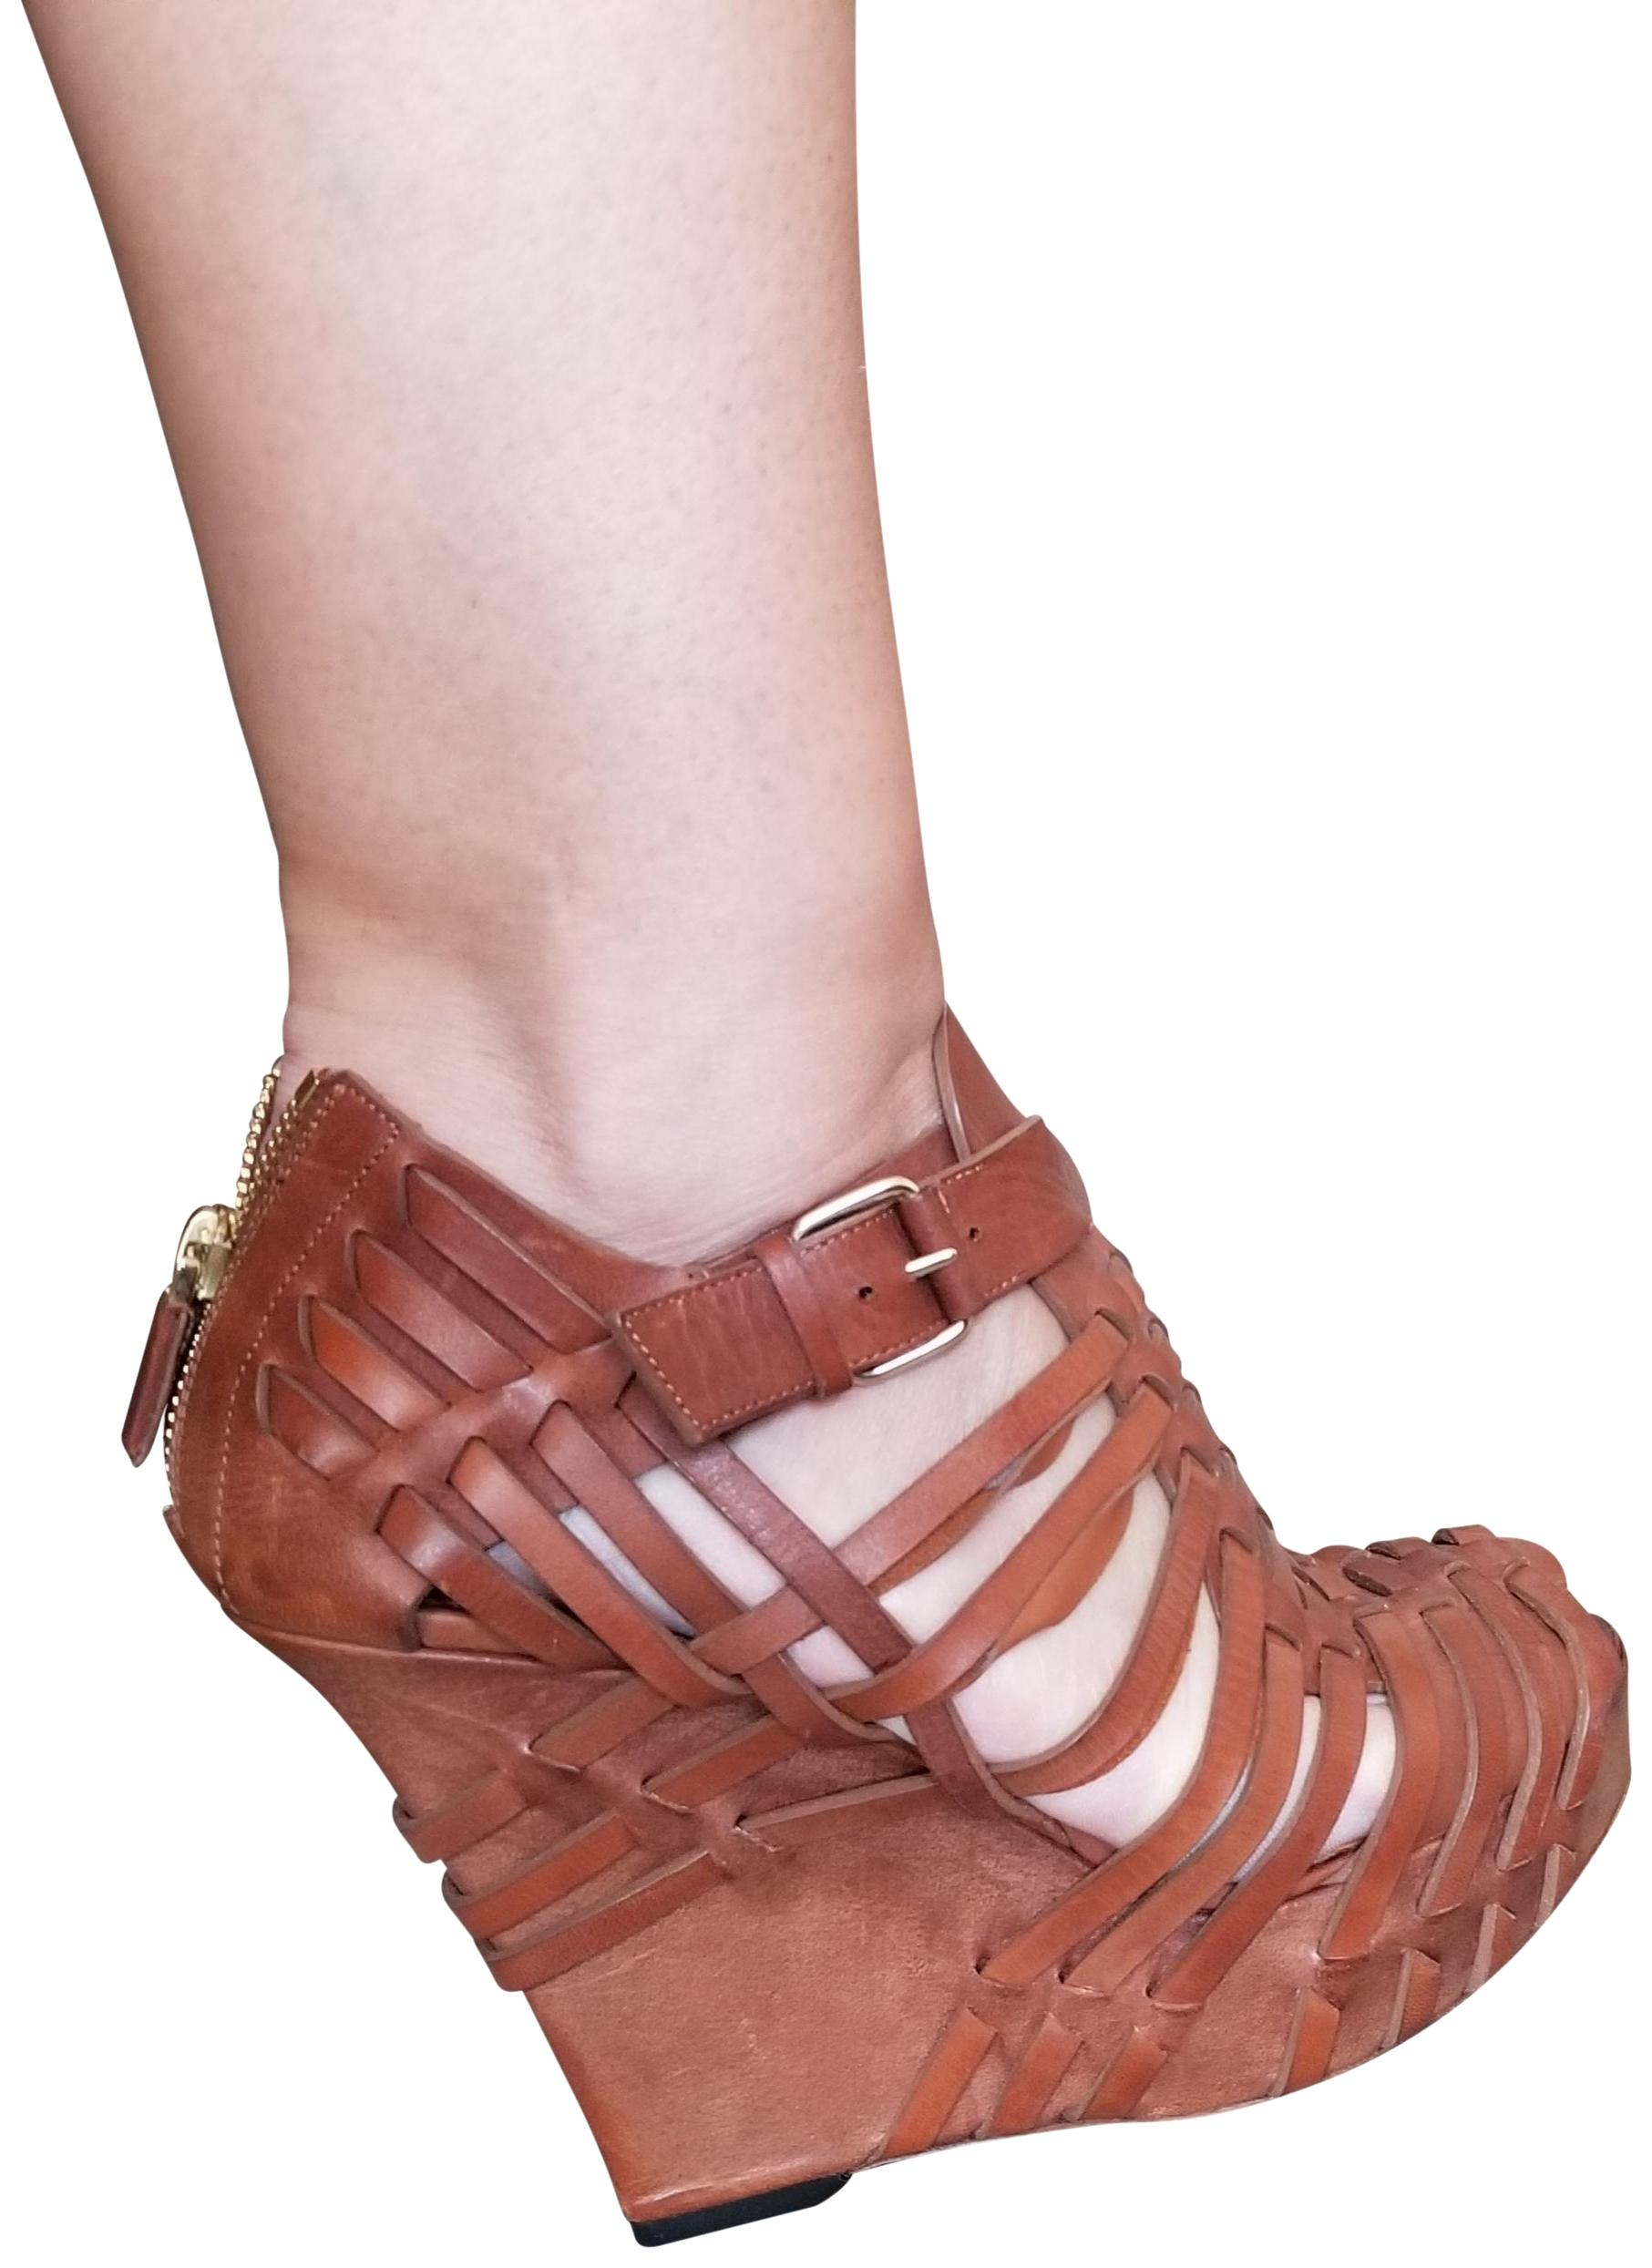 givenchy Marron  cales 38,5 taille ue 38,5 cales (environ 8,5) ordinaires (m, b) 8fefdd